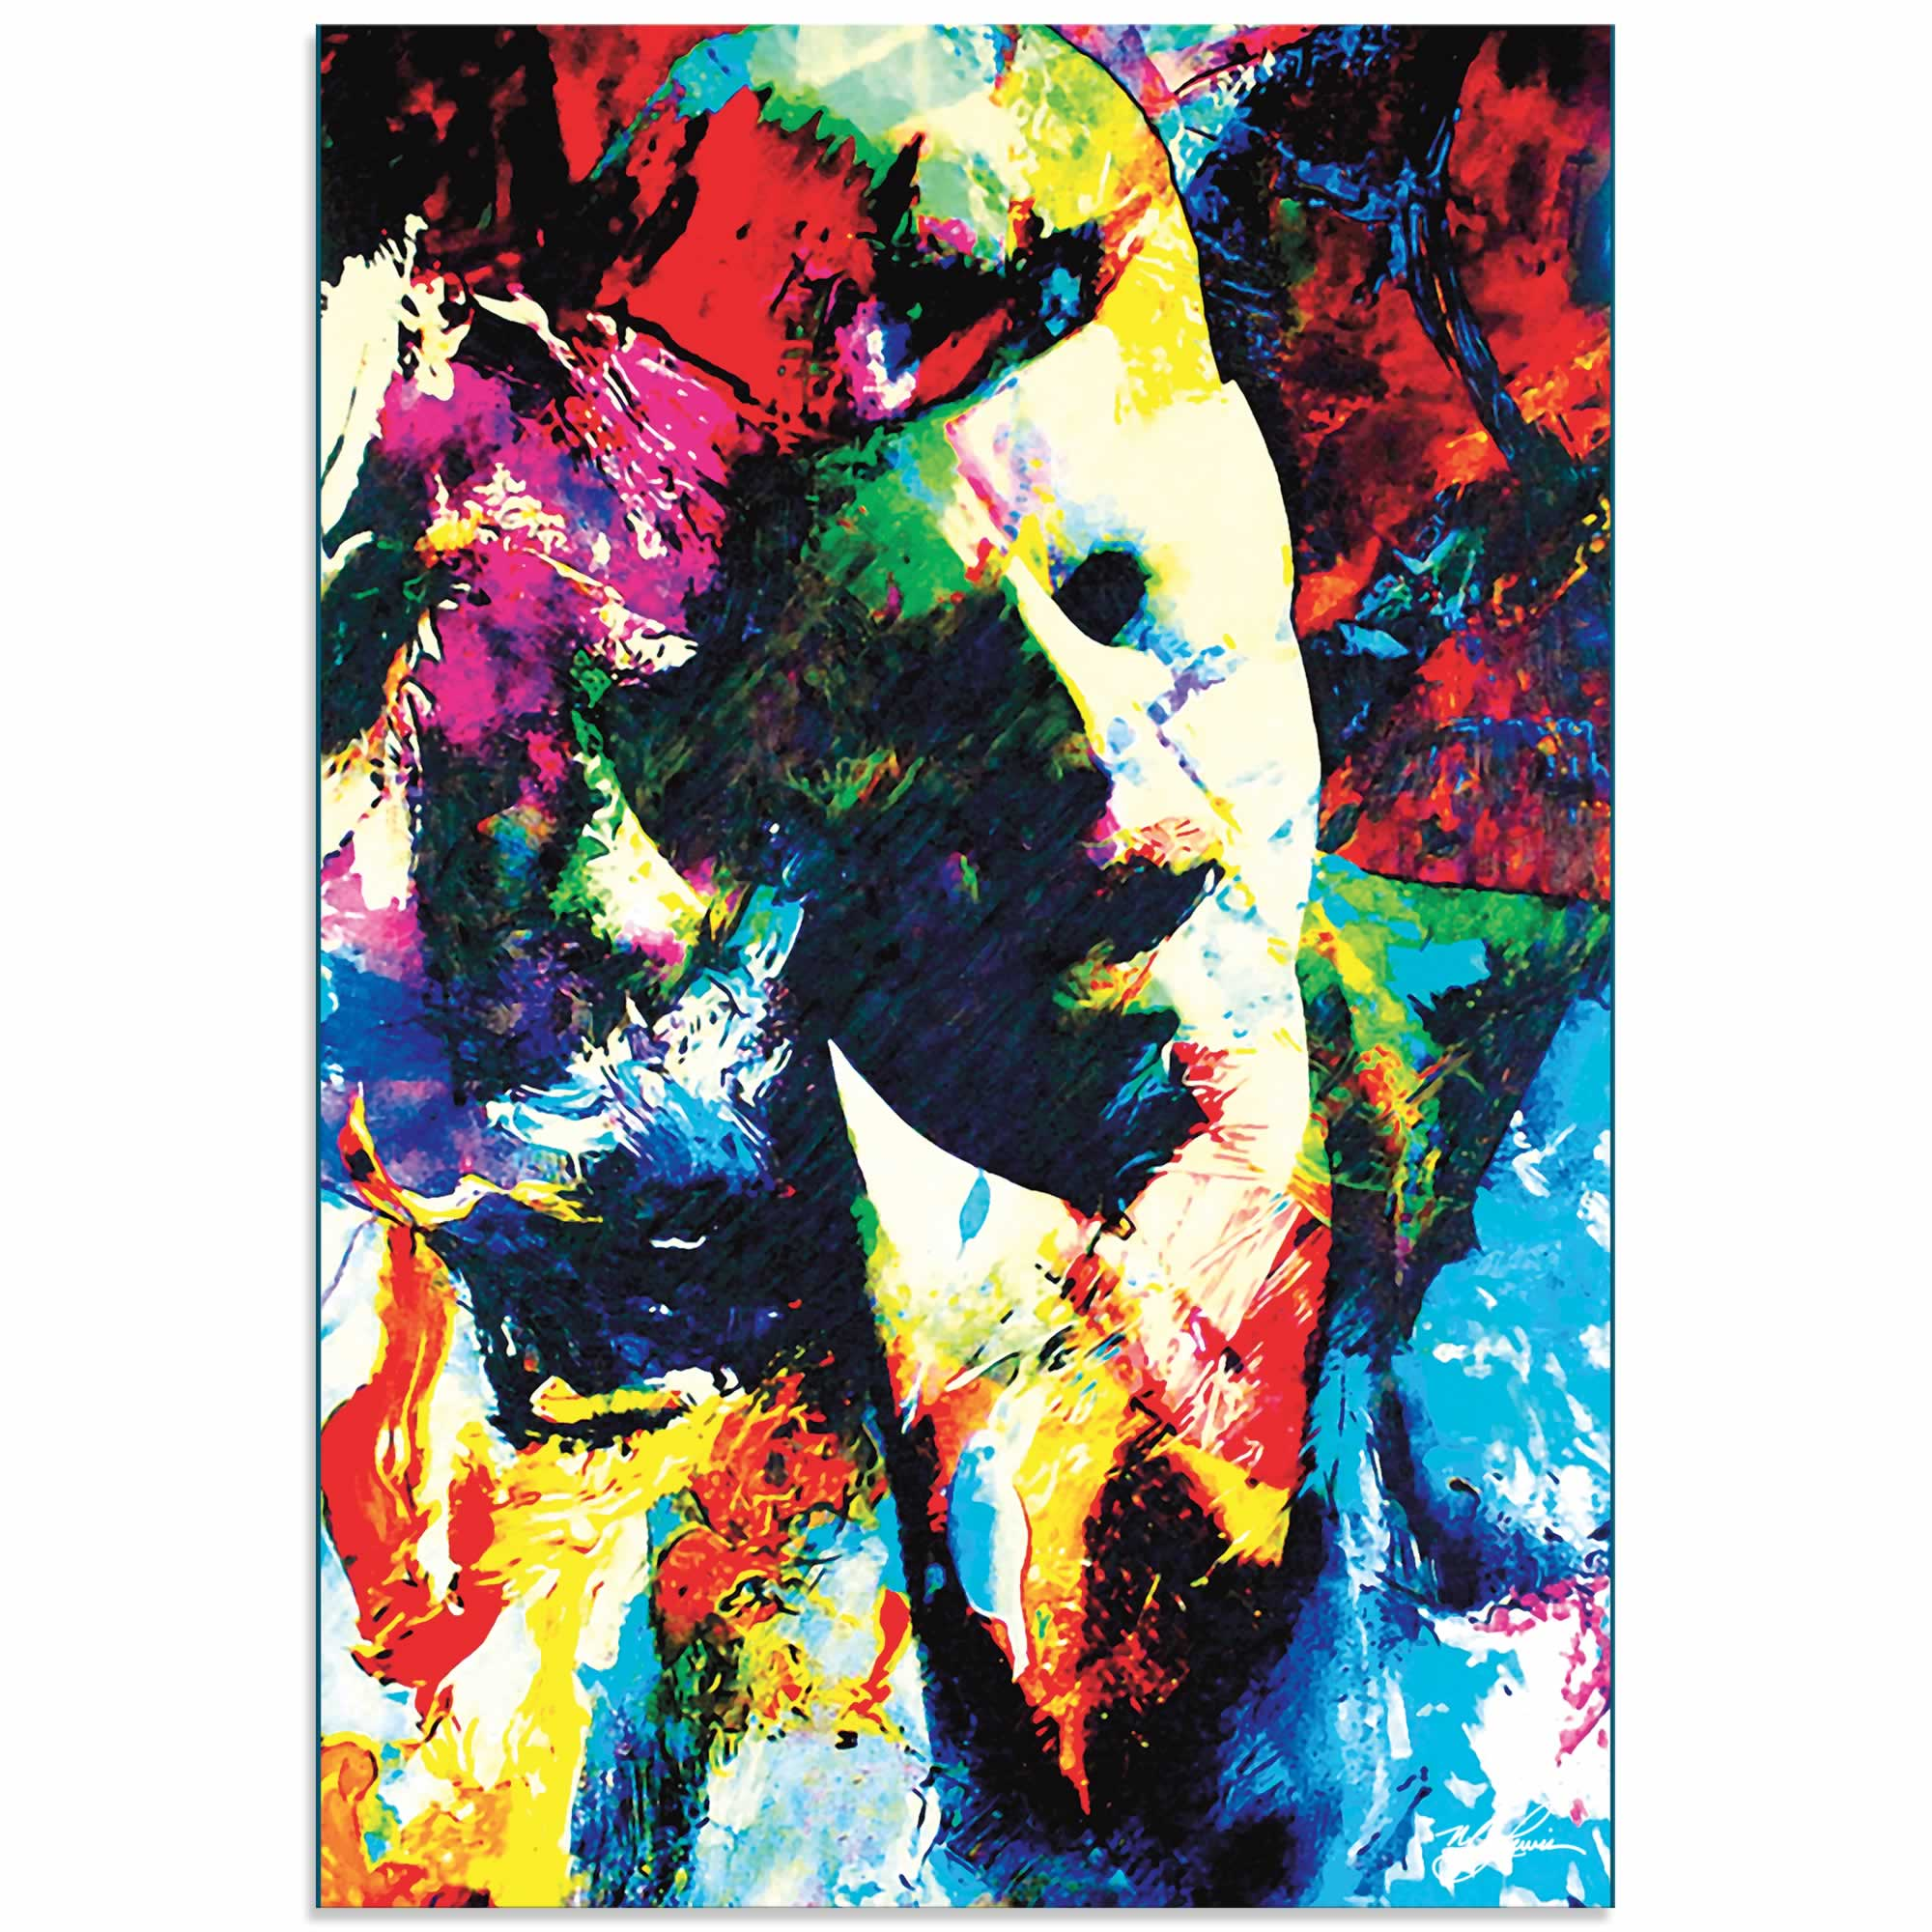 John F Kennedy JFK | Pop Art Painting by Mark Lewis, Signed & Numbered Limited Edition